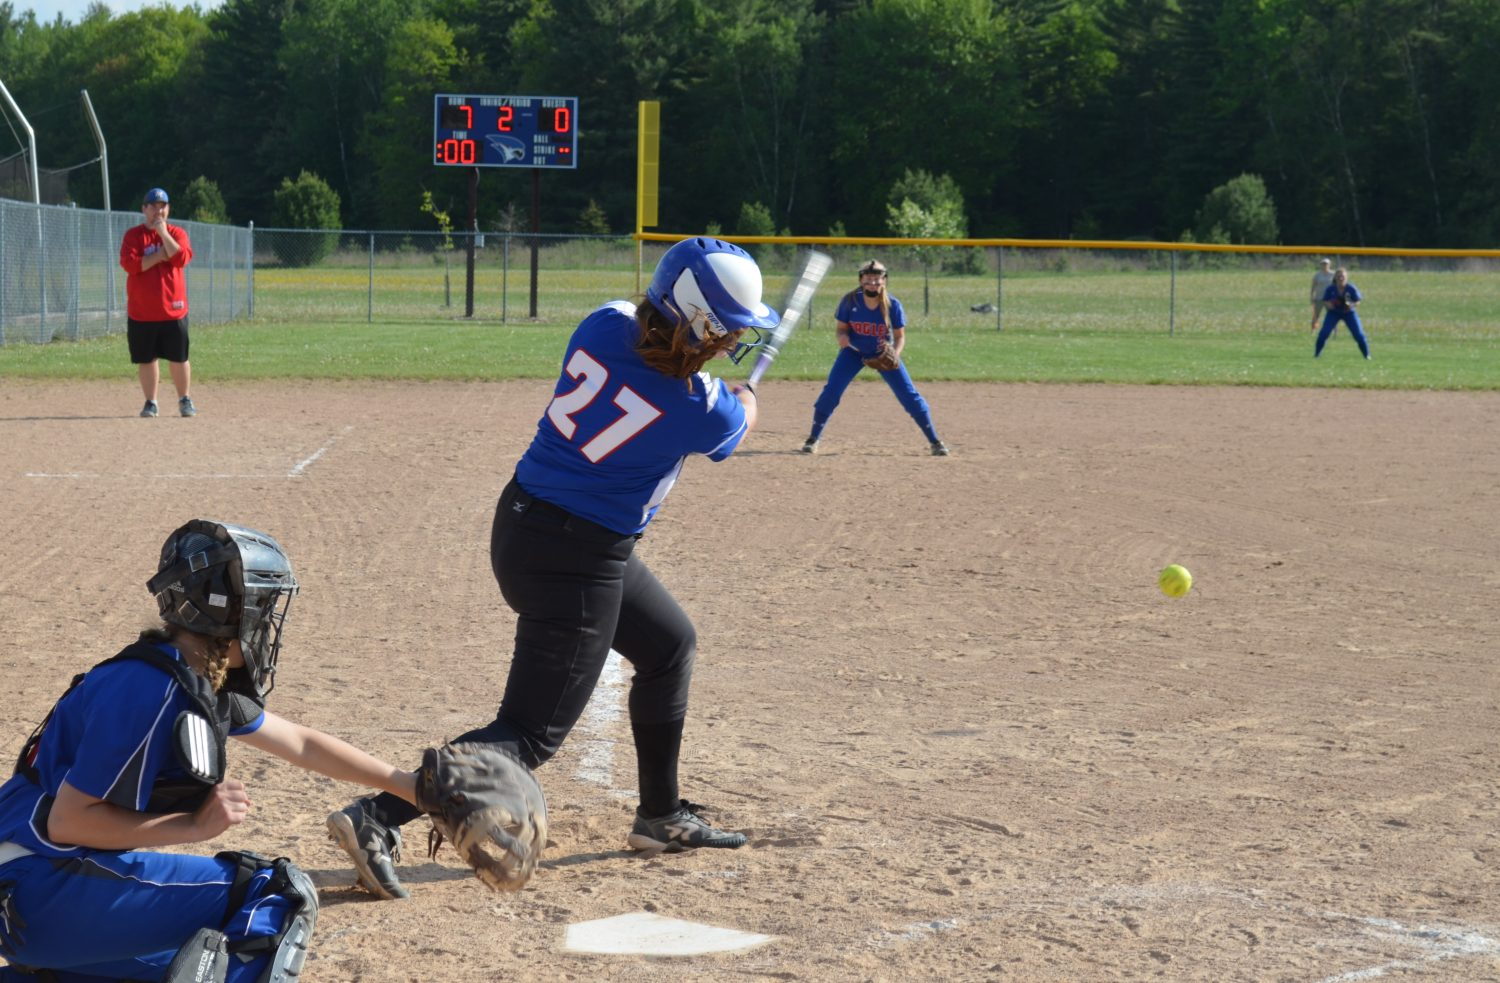 Chelsey LaMonica hits a hard grounder to third.